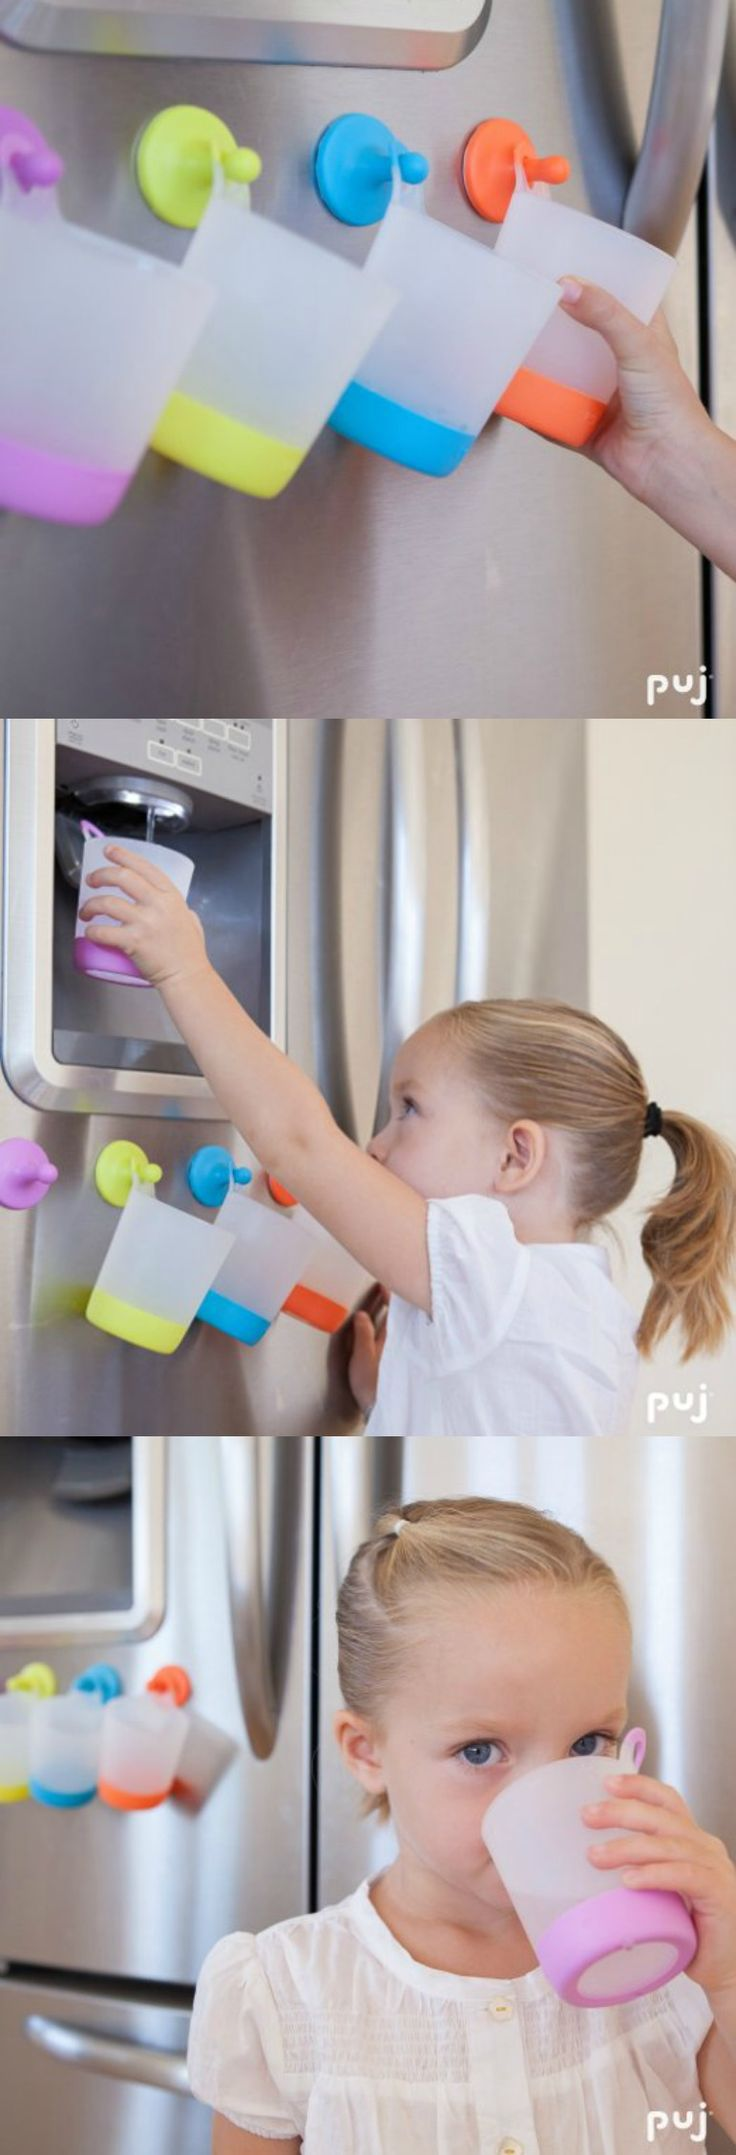 GENIUS! I got so sick of washing allllll the dirty cups my kids grab throughout the day, but I hate having extra cups on the counter. This is the perfect solution. They're low enough that my littles ones don't have to ask for help. AND there's a different color for each kid too so no confusion about whose is whose. {aff}